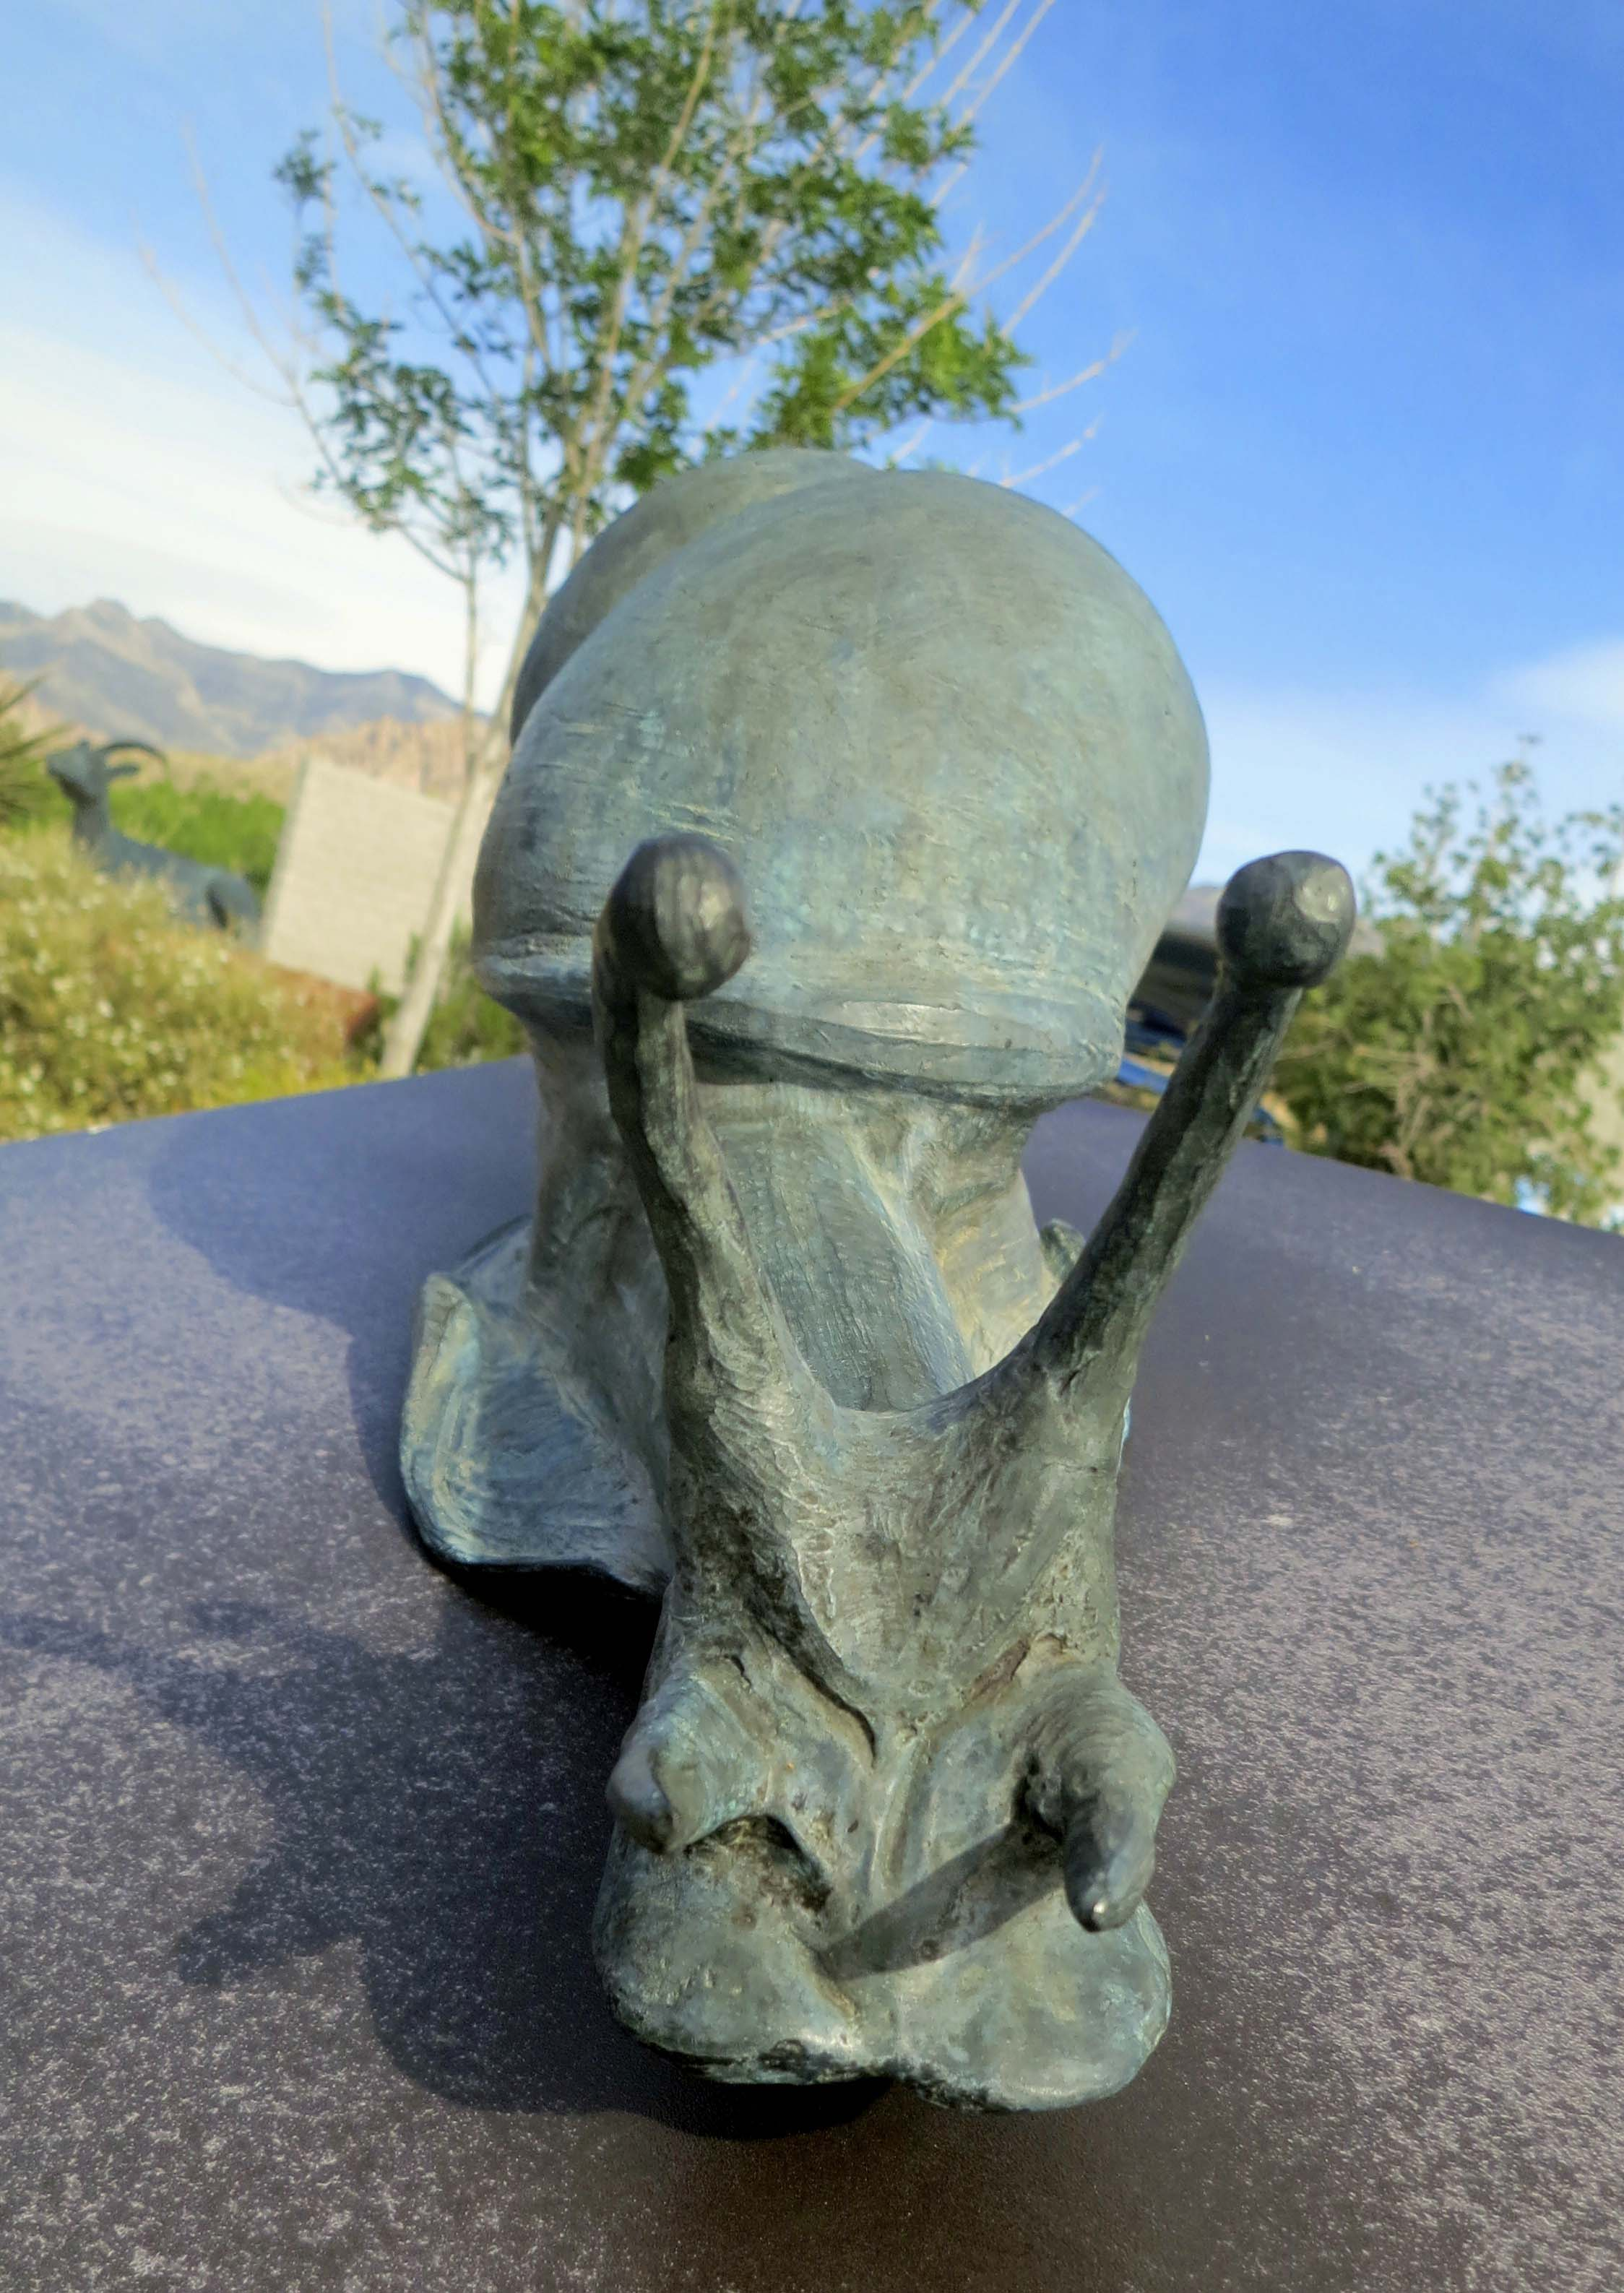 Be sure to stop off at the Visitor's Center for an overview of Red Rock Canyon. In addition to having excellent information on the park, it includes lots of fun things like this kid-sized snail sculpture.